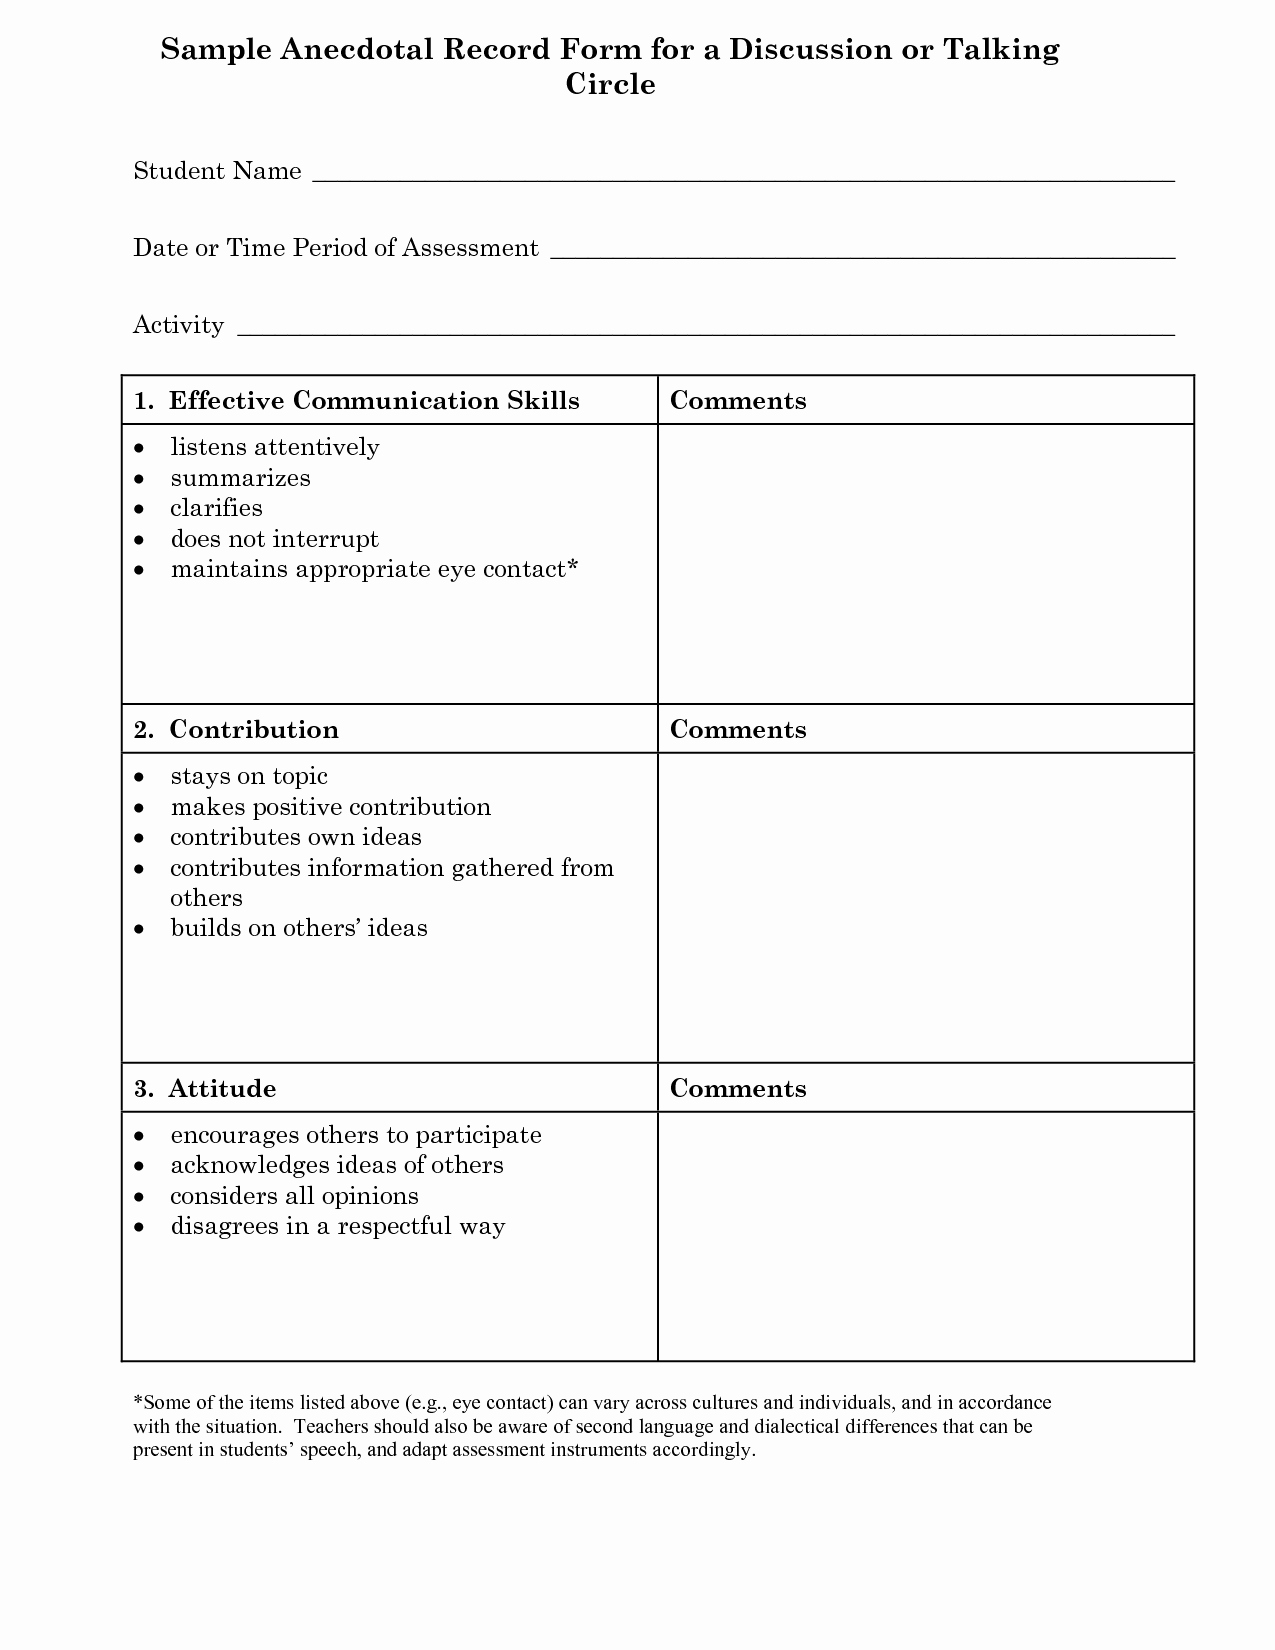 Preschool Teacher Observation form Template Elegant Anecdotal Record Examples Preschoolers